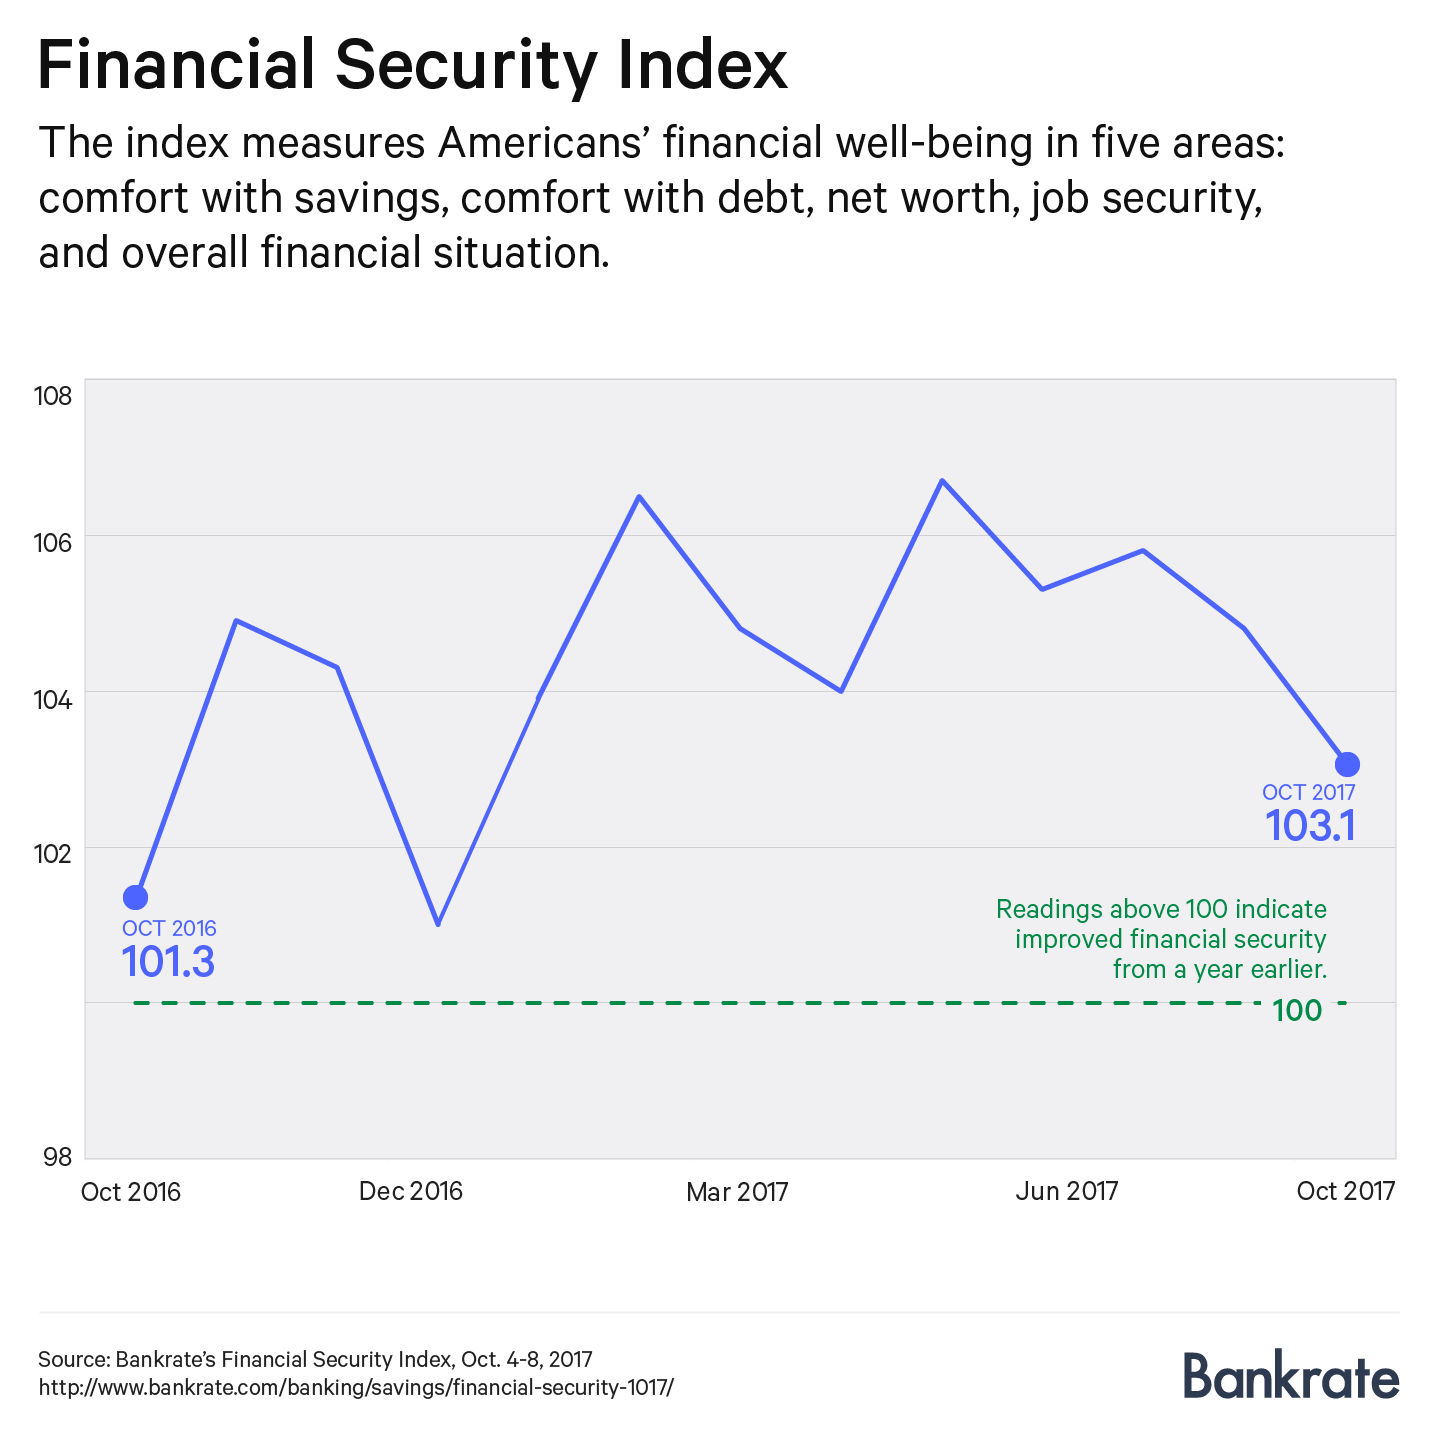 Financial Security Index, October 2017